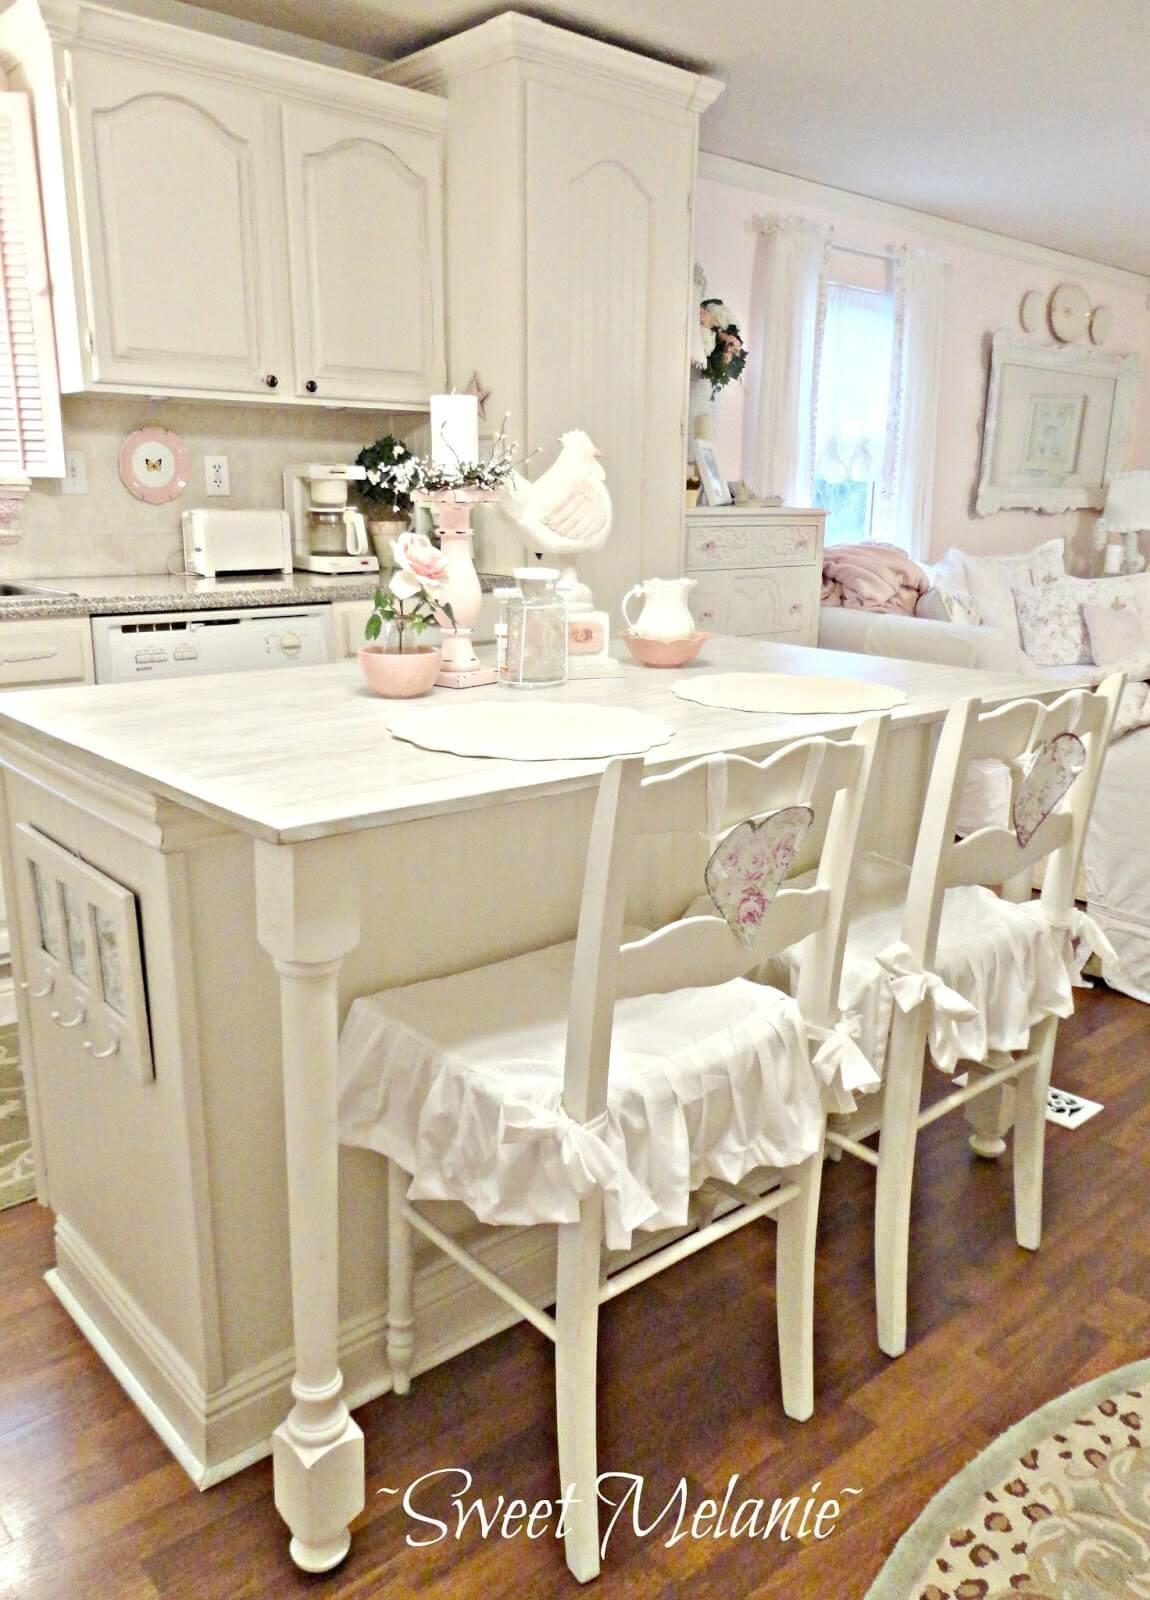 Best Shabby Chic Kitchen Decor Ideas Designs 2018